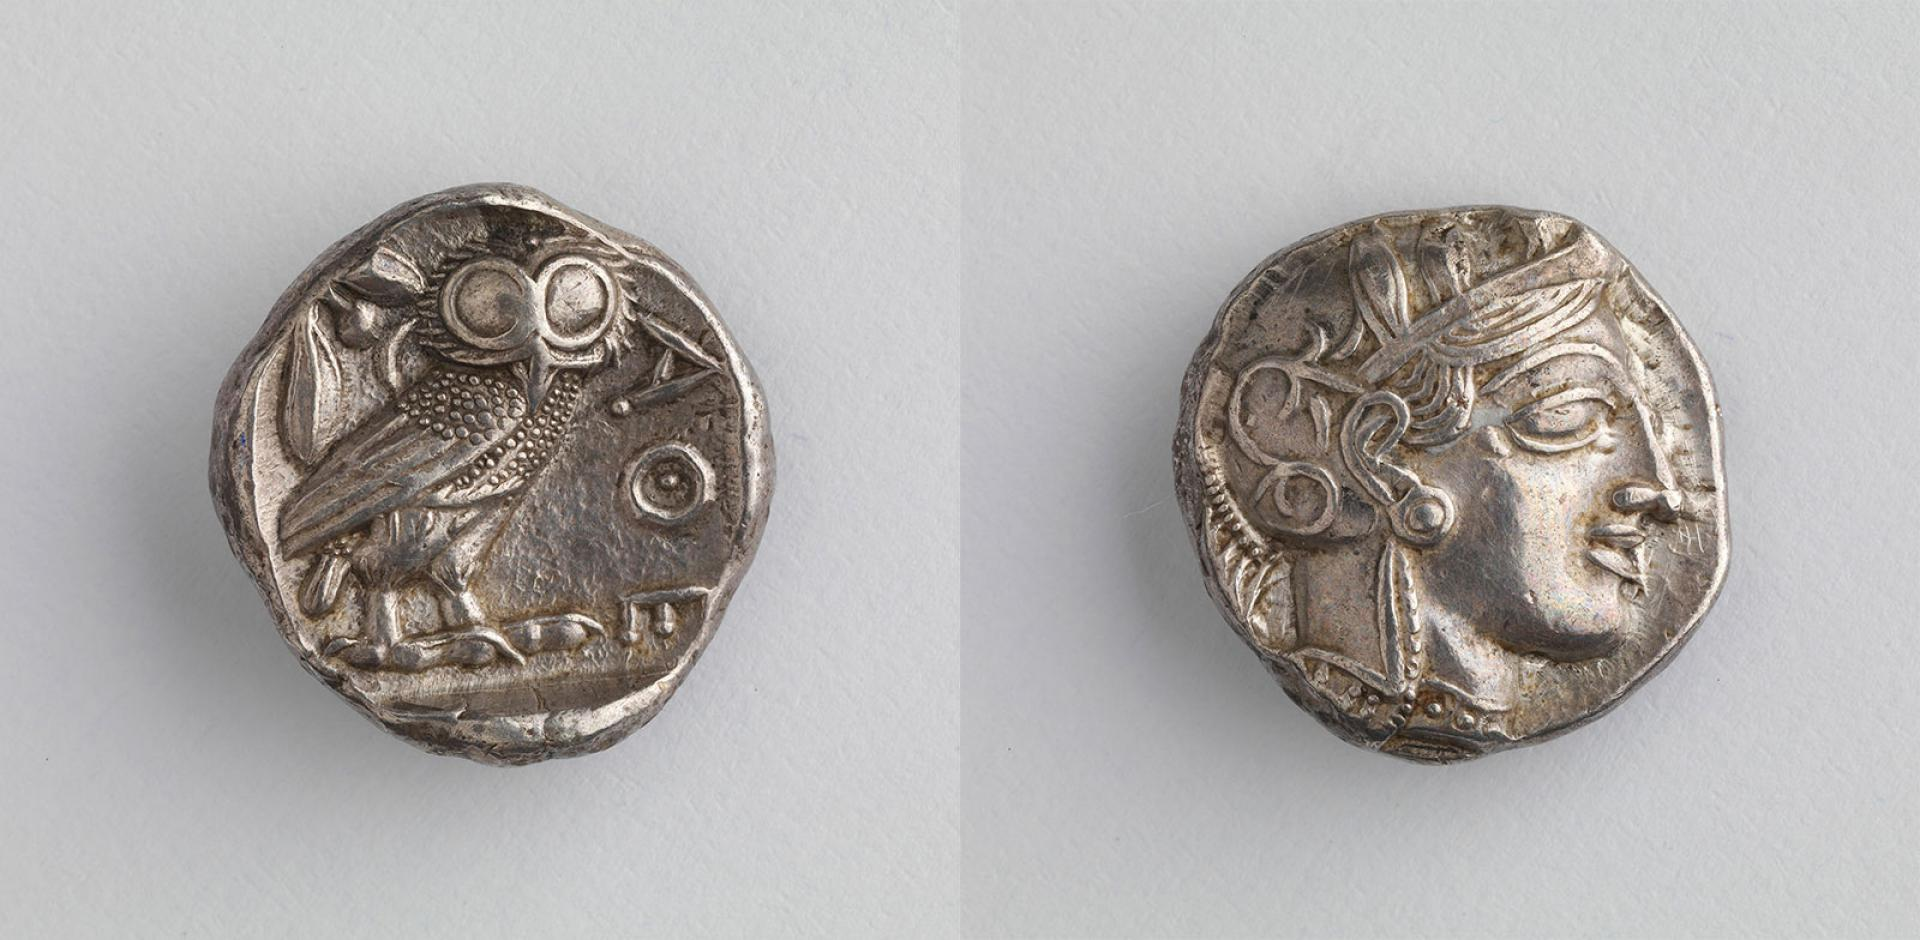 SHM 10195 - CoinSilverClassical PeriodSecond half of 5th century BCAttica